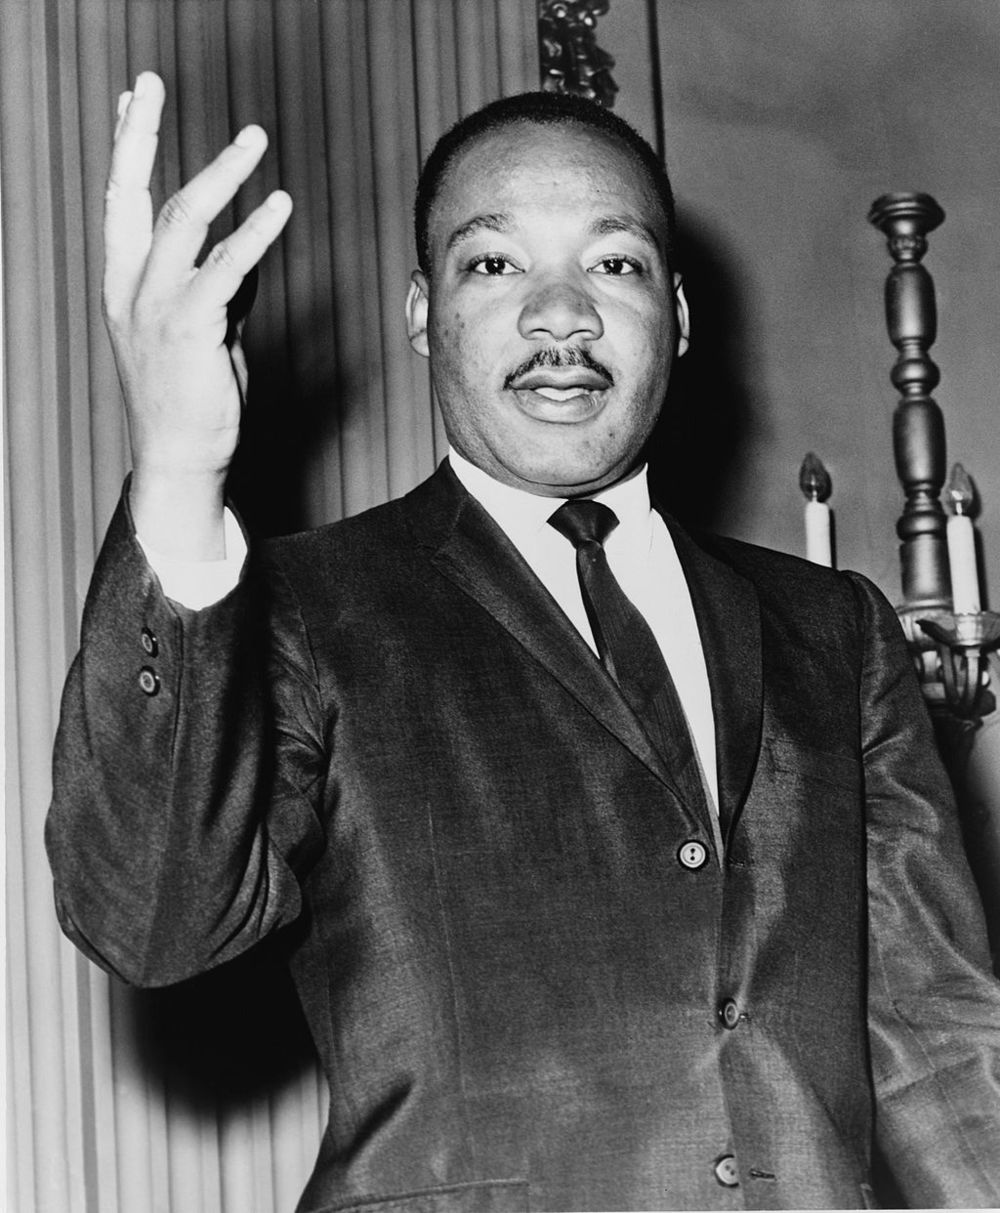 Martin Luther King, Junior in 1964.